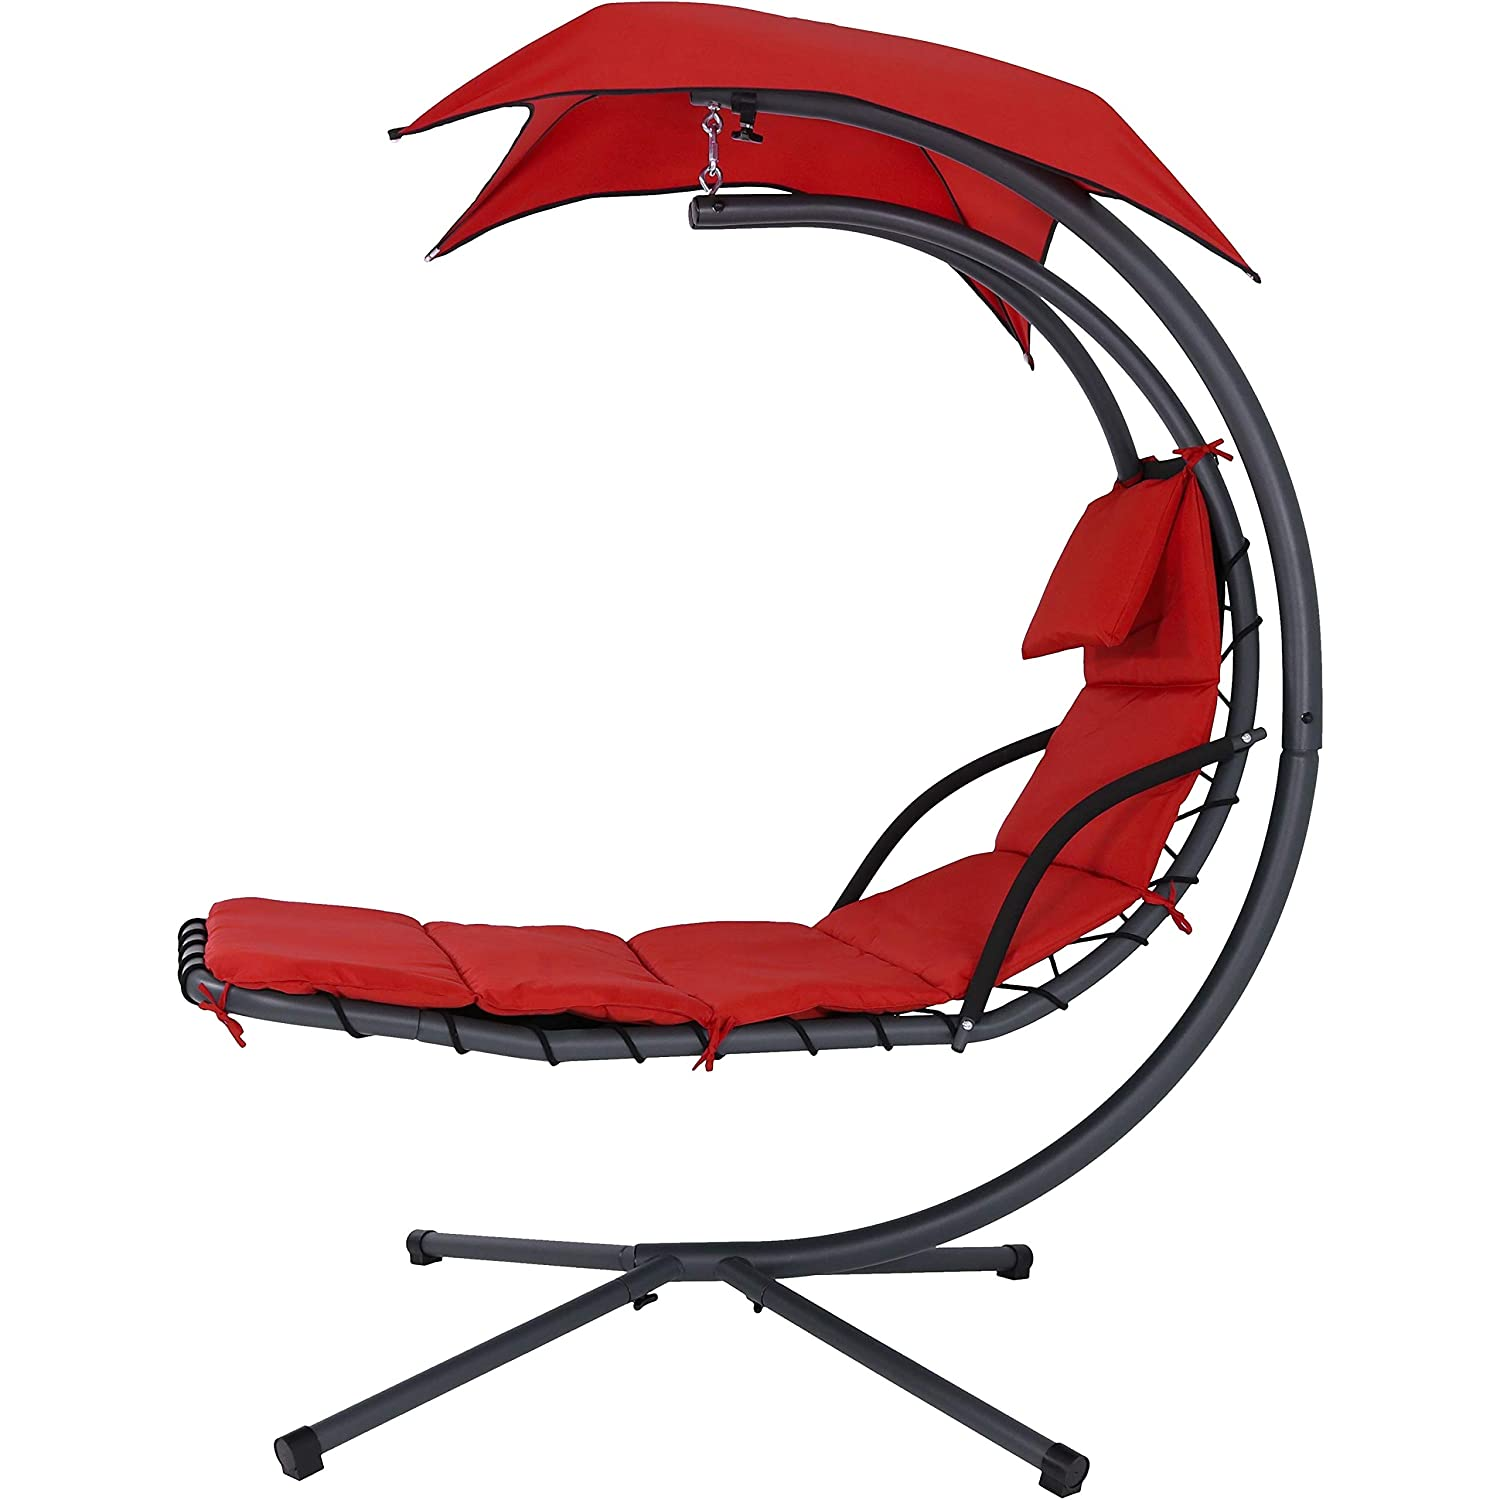 43 Inch Wide x 80 Inch Tall Sunnydaze Lakeview Floating Chaise Lounger Swing Chair with Canopy Umbrella Set of 2